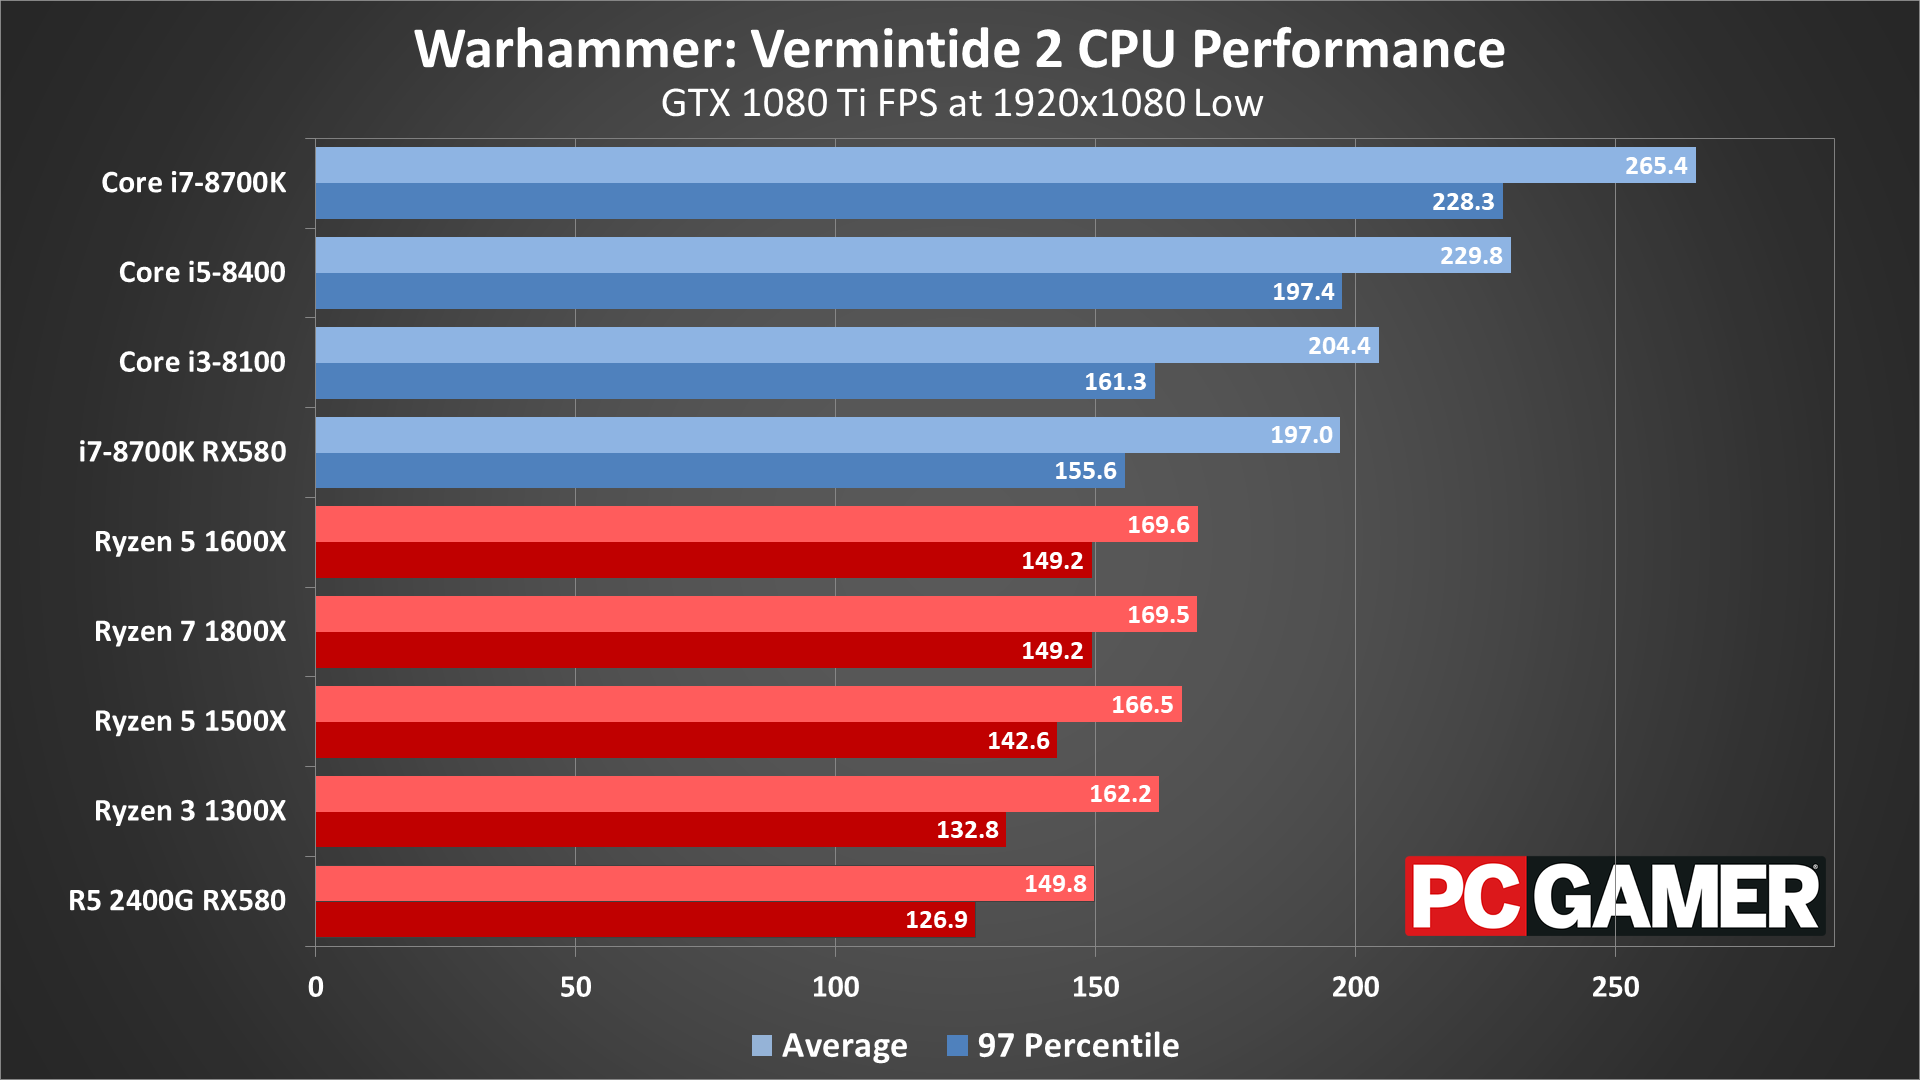 Warhammer: Vermintide 2 graphics settings and performance analysis